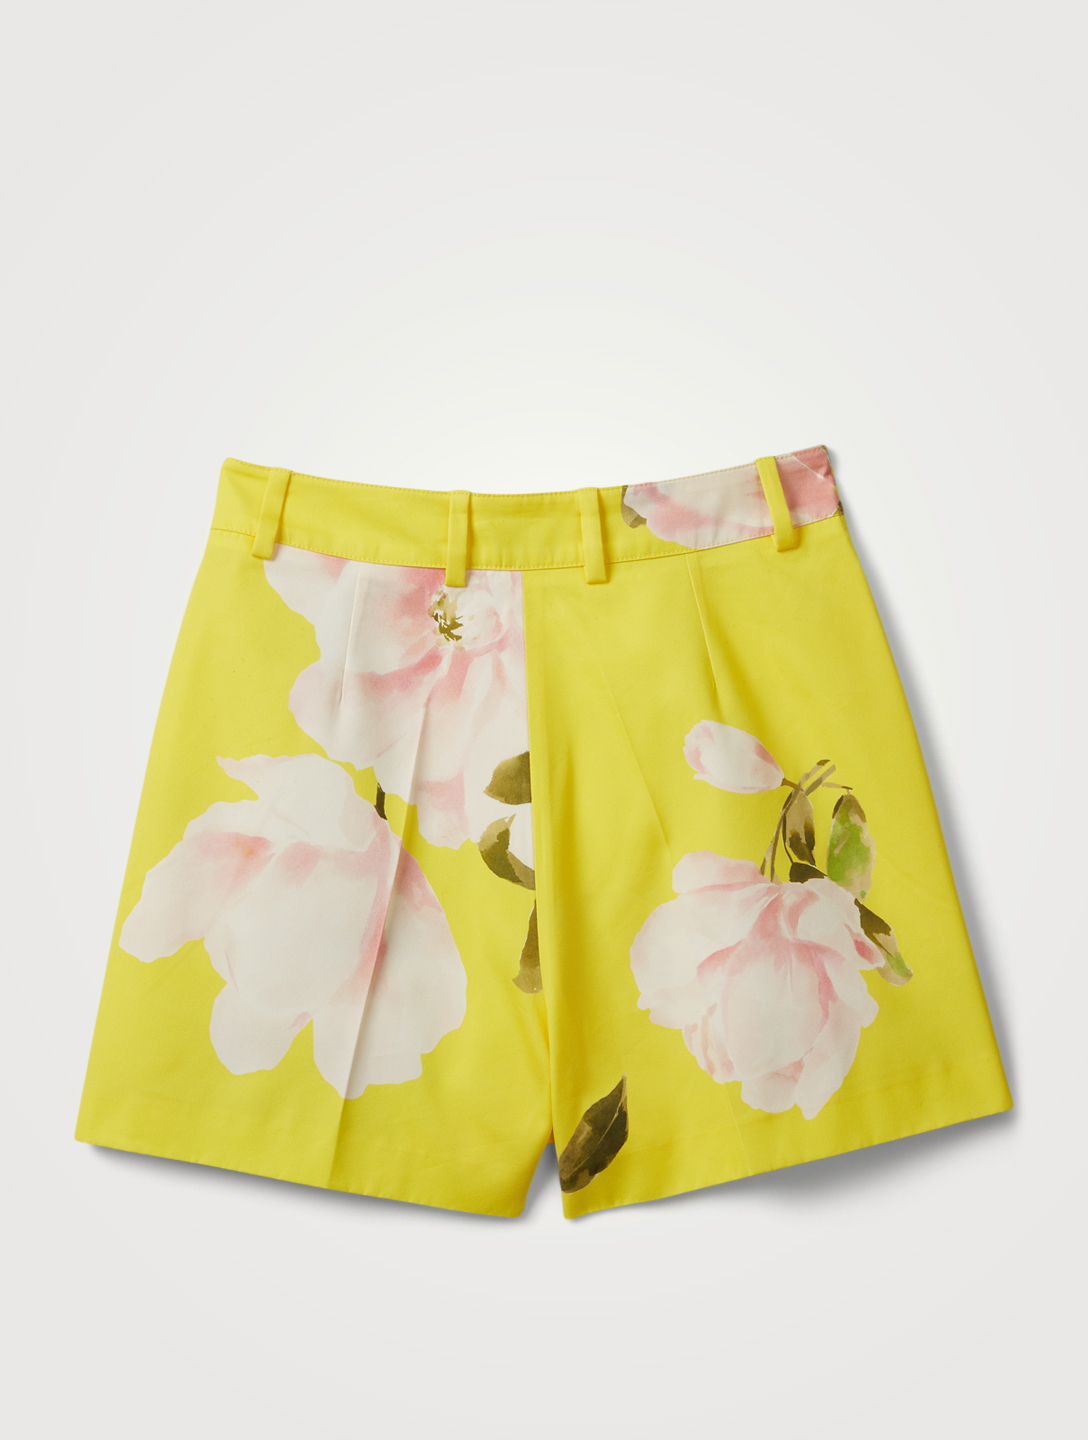 VALENTINO Cotton And Silk Shorts In Floral Print Women's Yellow